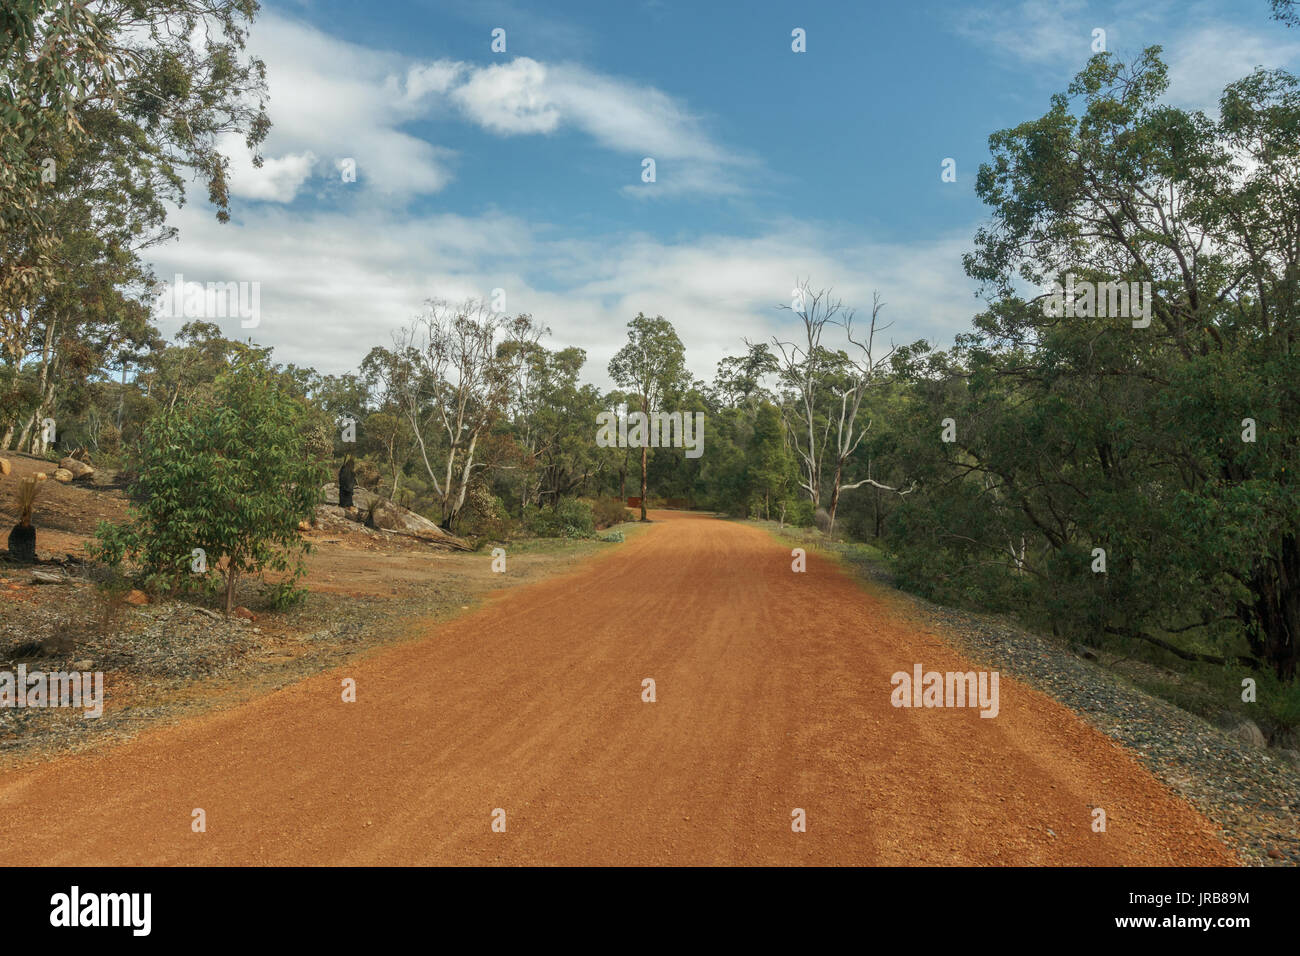 Railway heritage trail in John Forrest national park, Darling range, Western Australia - Stock Image